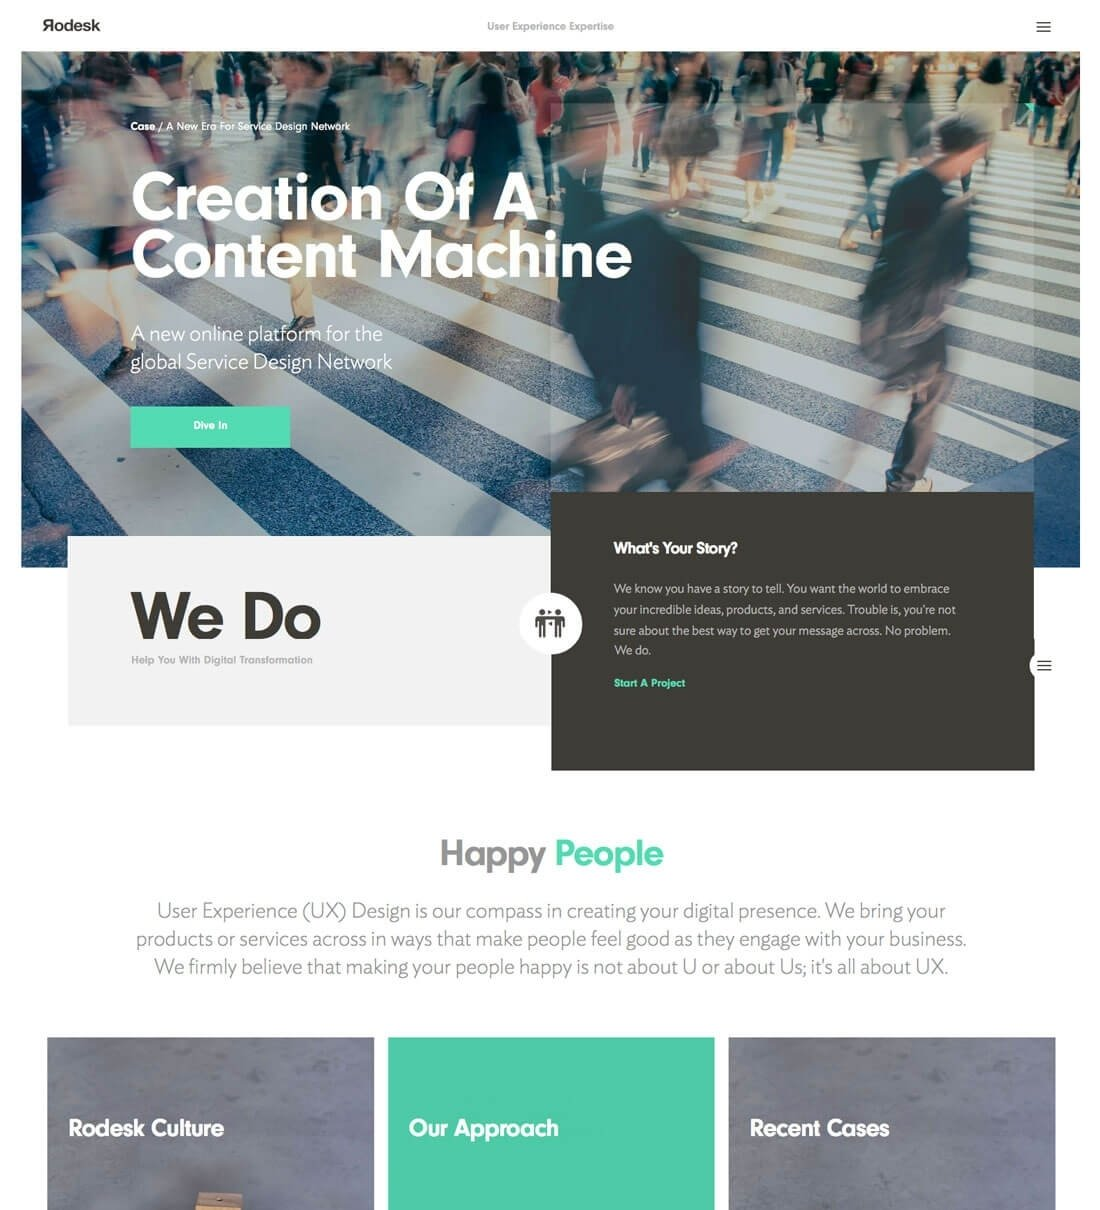 10 Most Recommended Good Ideas For A Website 5 website layout ideas that never get old design shack 2020